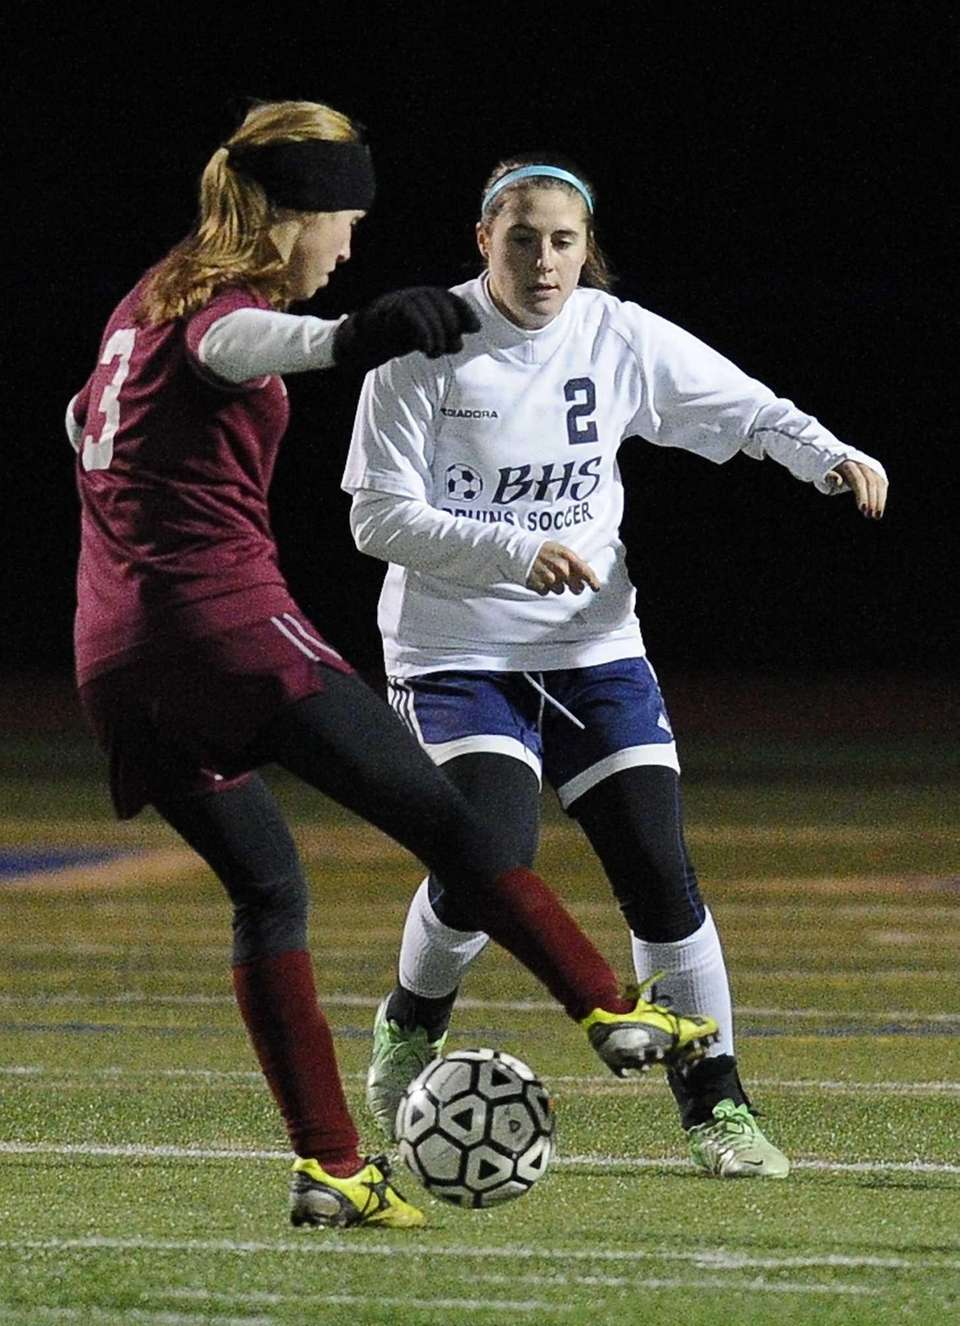 Nassau County's Alyssa Gangi defends against Suffolk County.